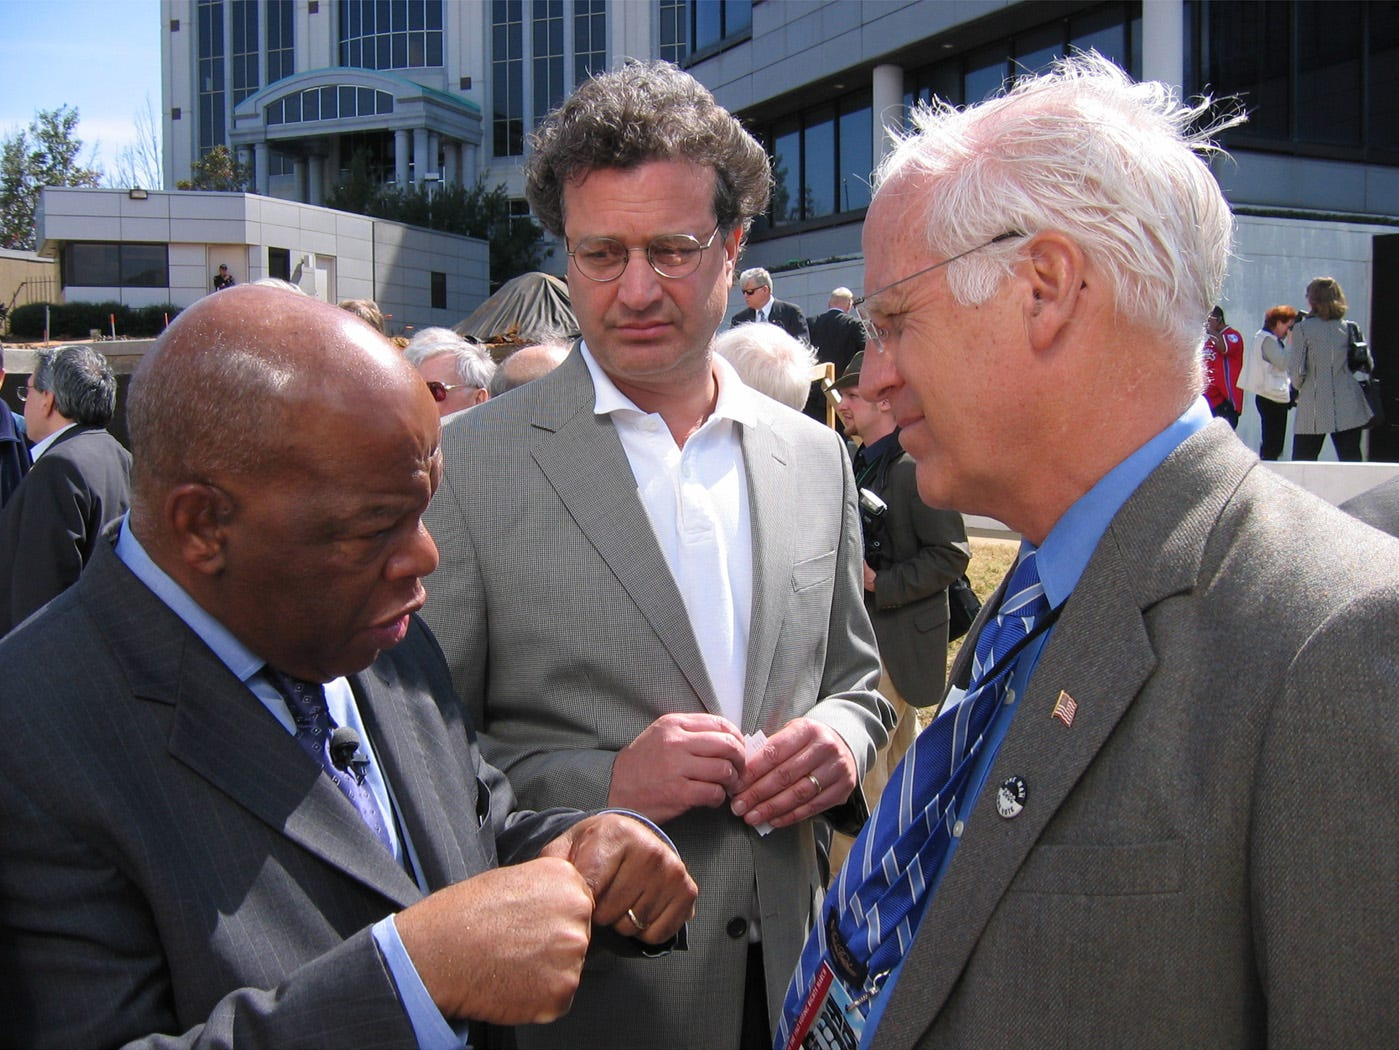 U.S. Rep. John Lewis, D-Atlanta, left, chats with U.S. Rep. Christopher Shays, R-Conn., right and Richard Cohen, Saturday afternoon during a ceremony at the Southern Poverty Law Center's Civil Rights Memorial, Saturday, March 3, 2005.